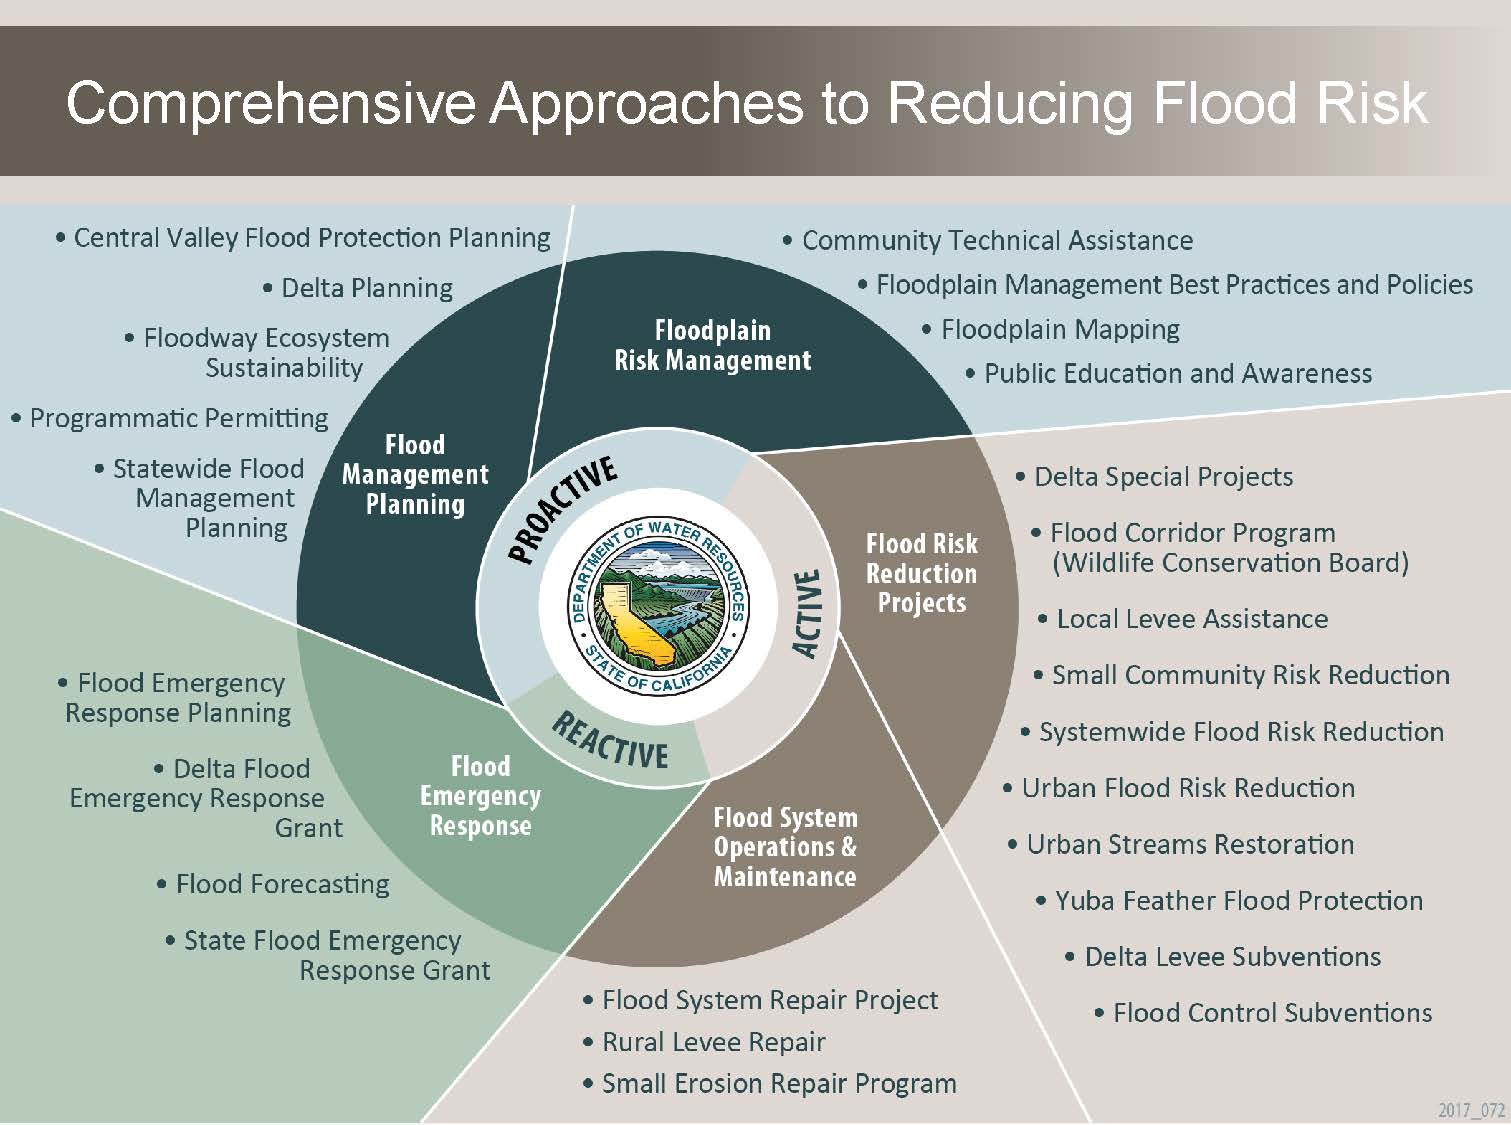 Delta stewardship council overview of the central valley flood the plan update also discusses a series of comprehensive approaches within dwrs program of activities on how to better manage flood risks within the pooptronica